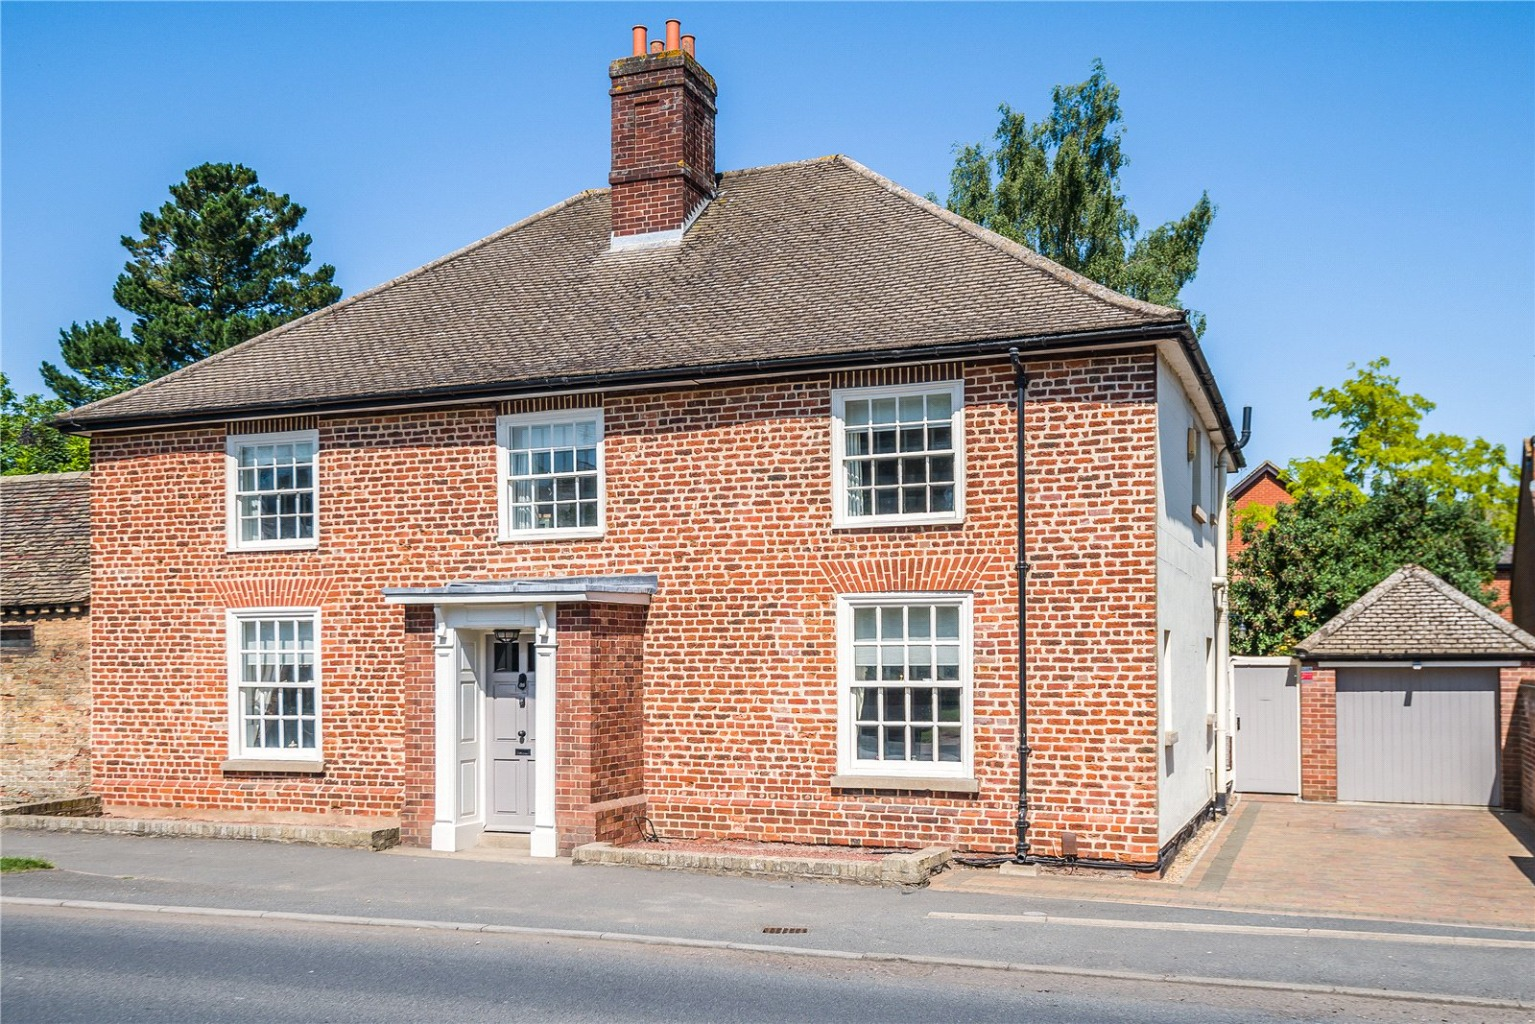 A rare opportunity has arisen to acquire this stunning grade II listed, detached House, which is one of only seven domestic properties featured in *The Hartford Heritage Trail.